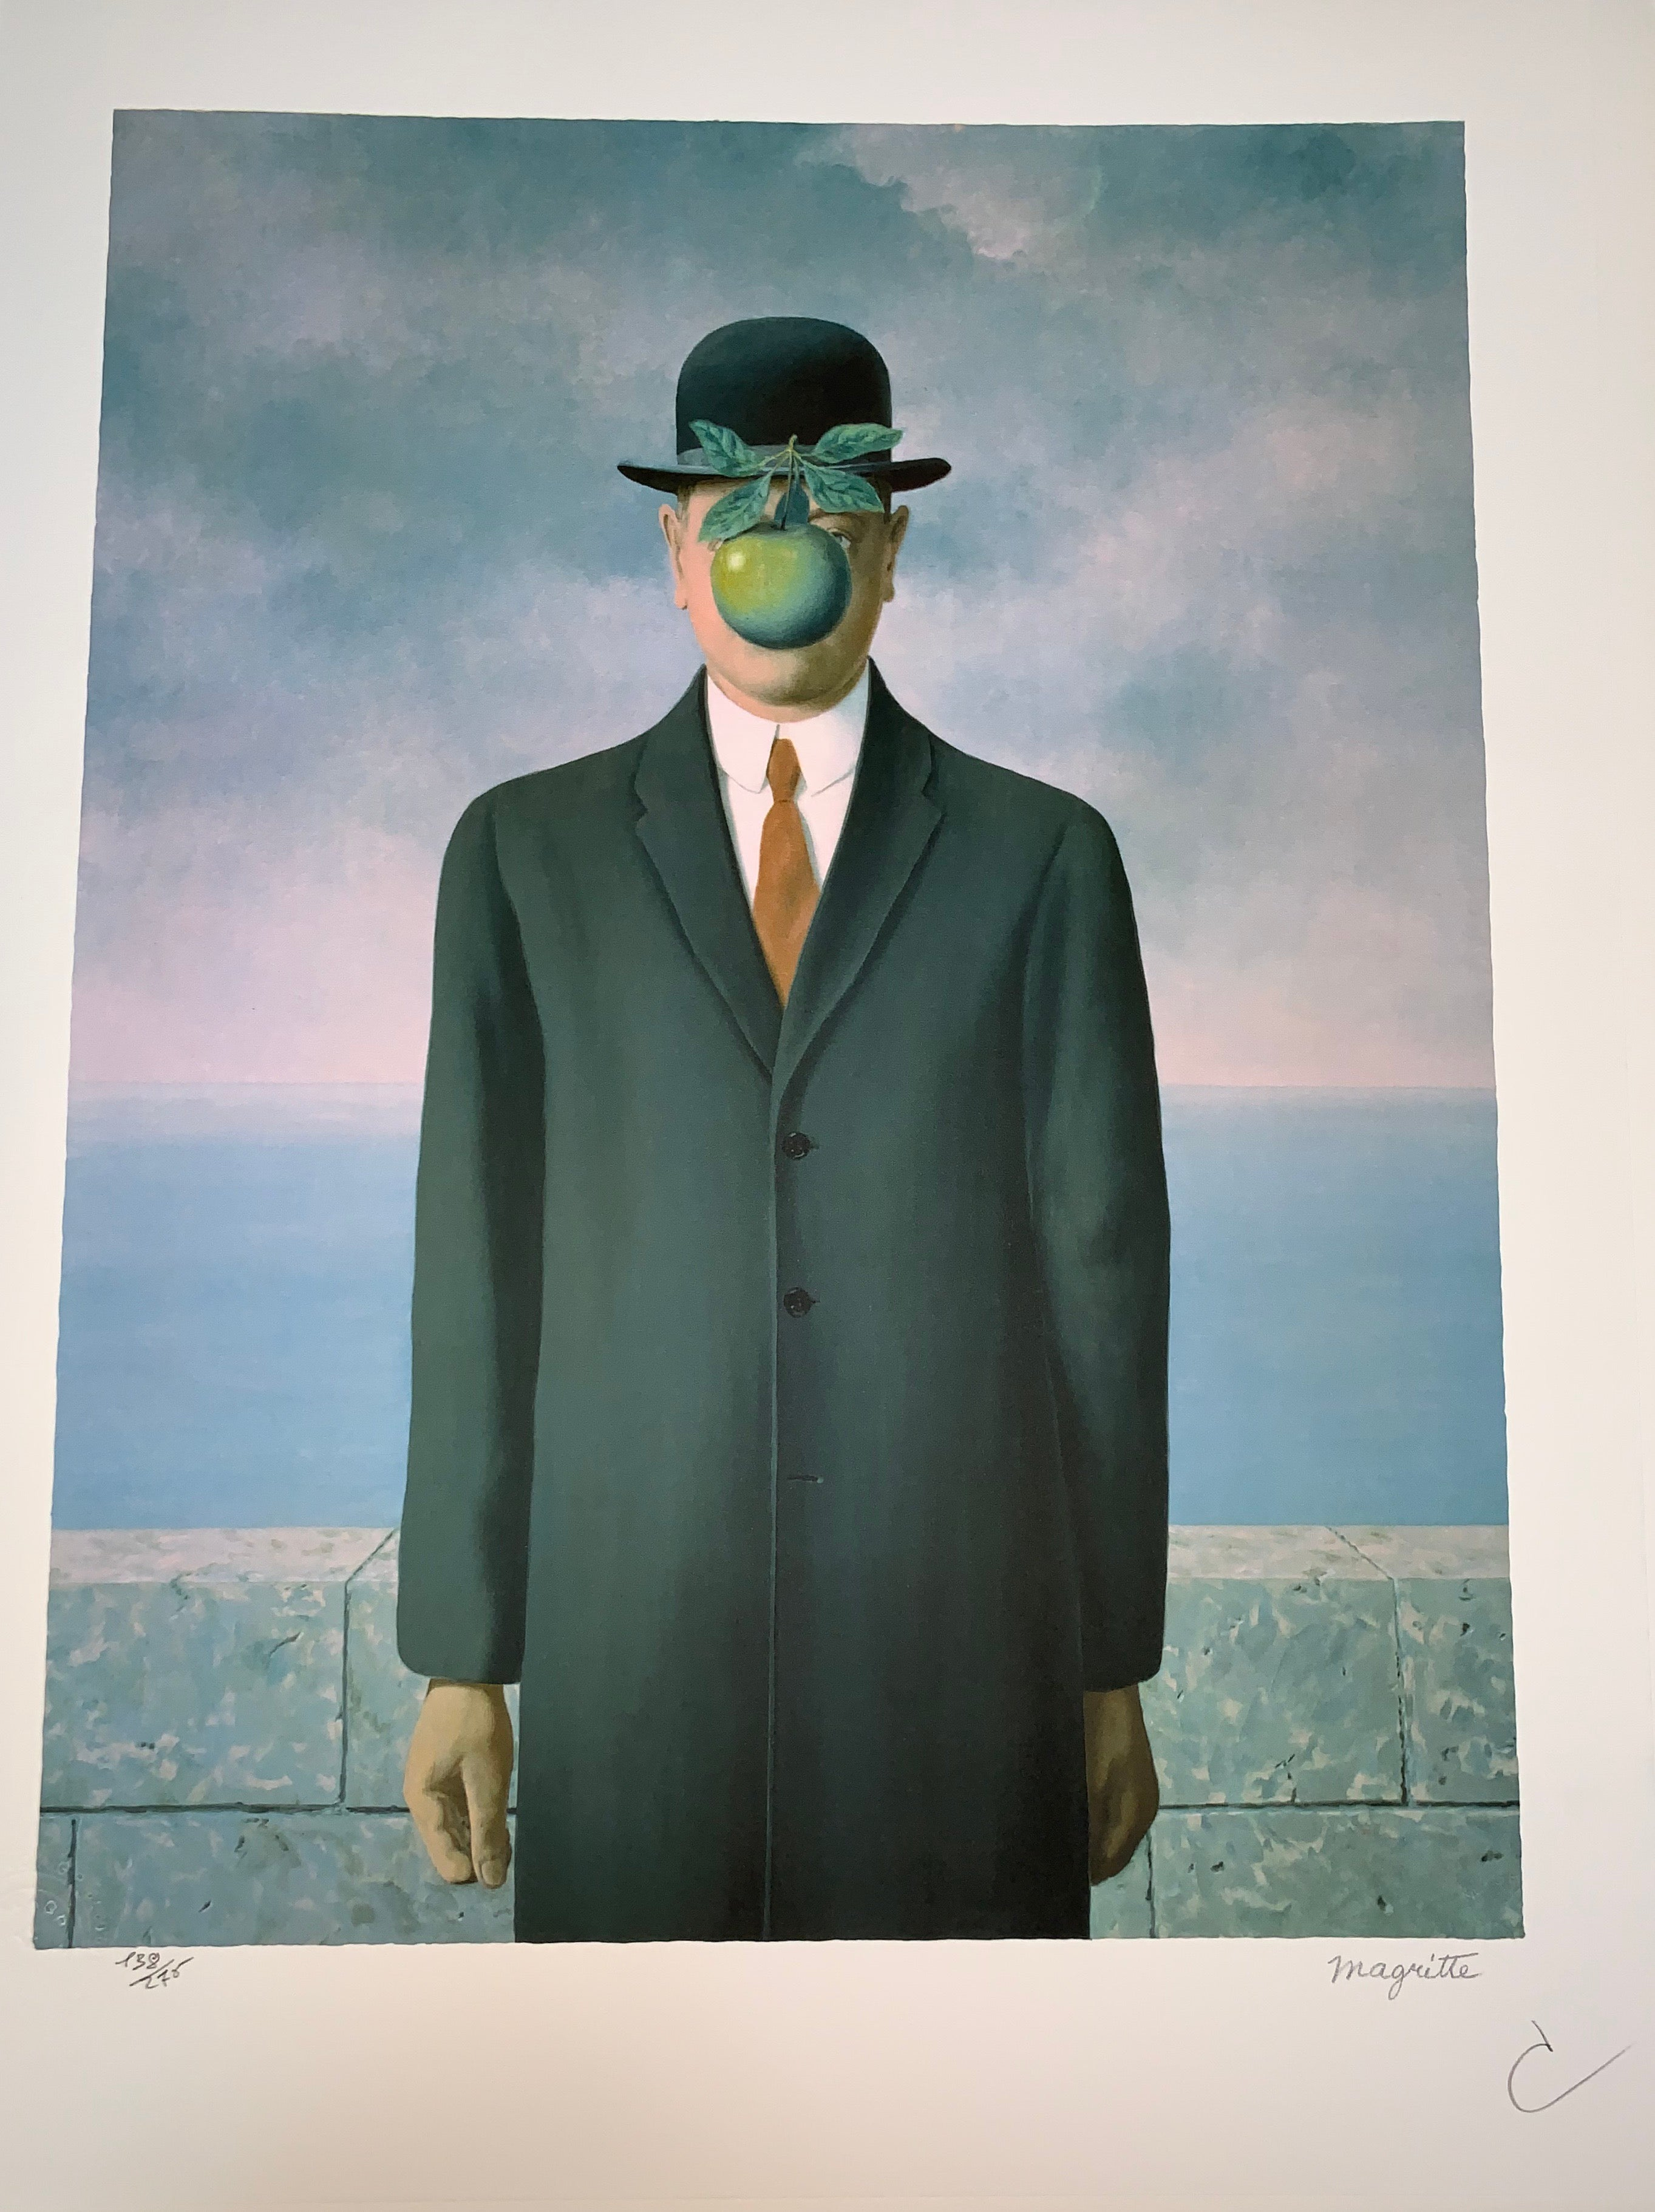 ddca33e0406 after) René Magritte - Le Fils de l Homme - 20th Century